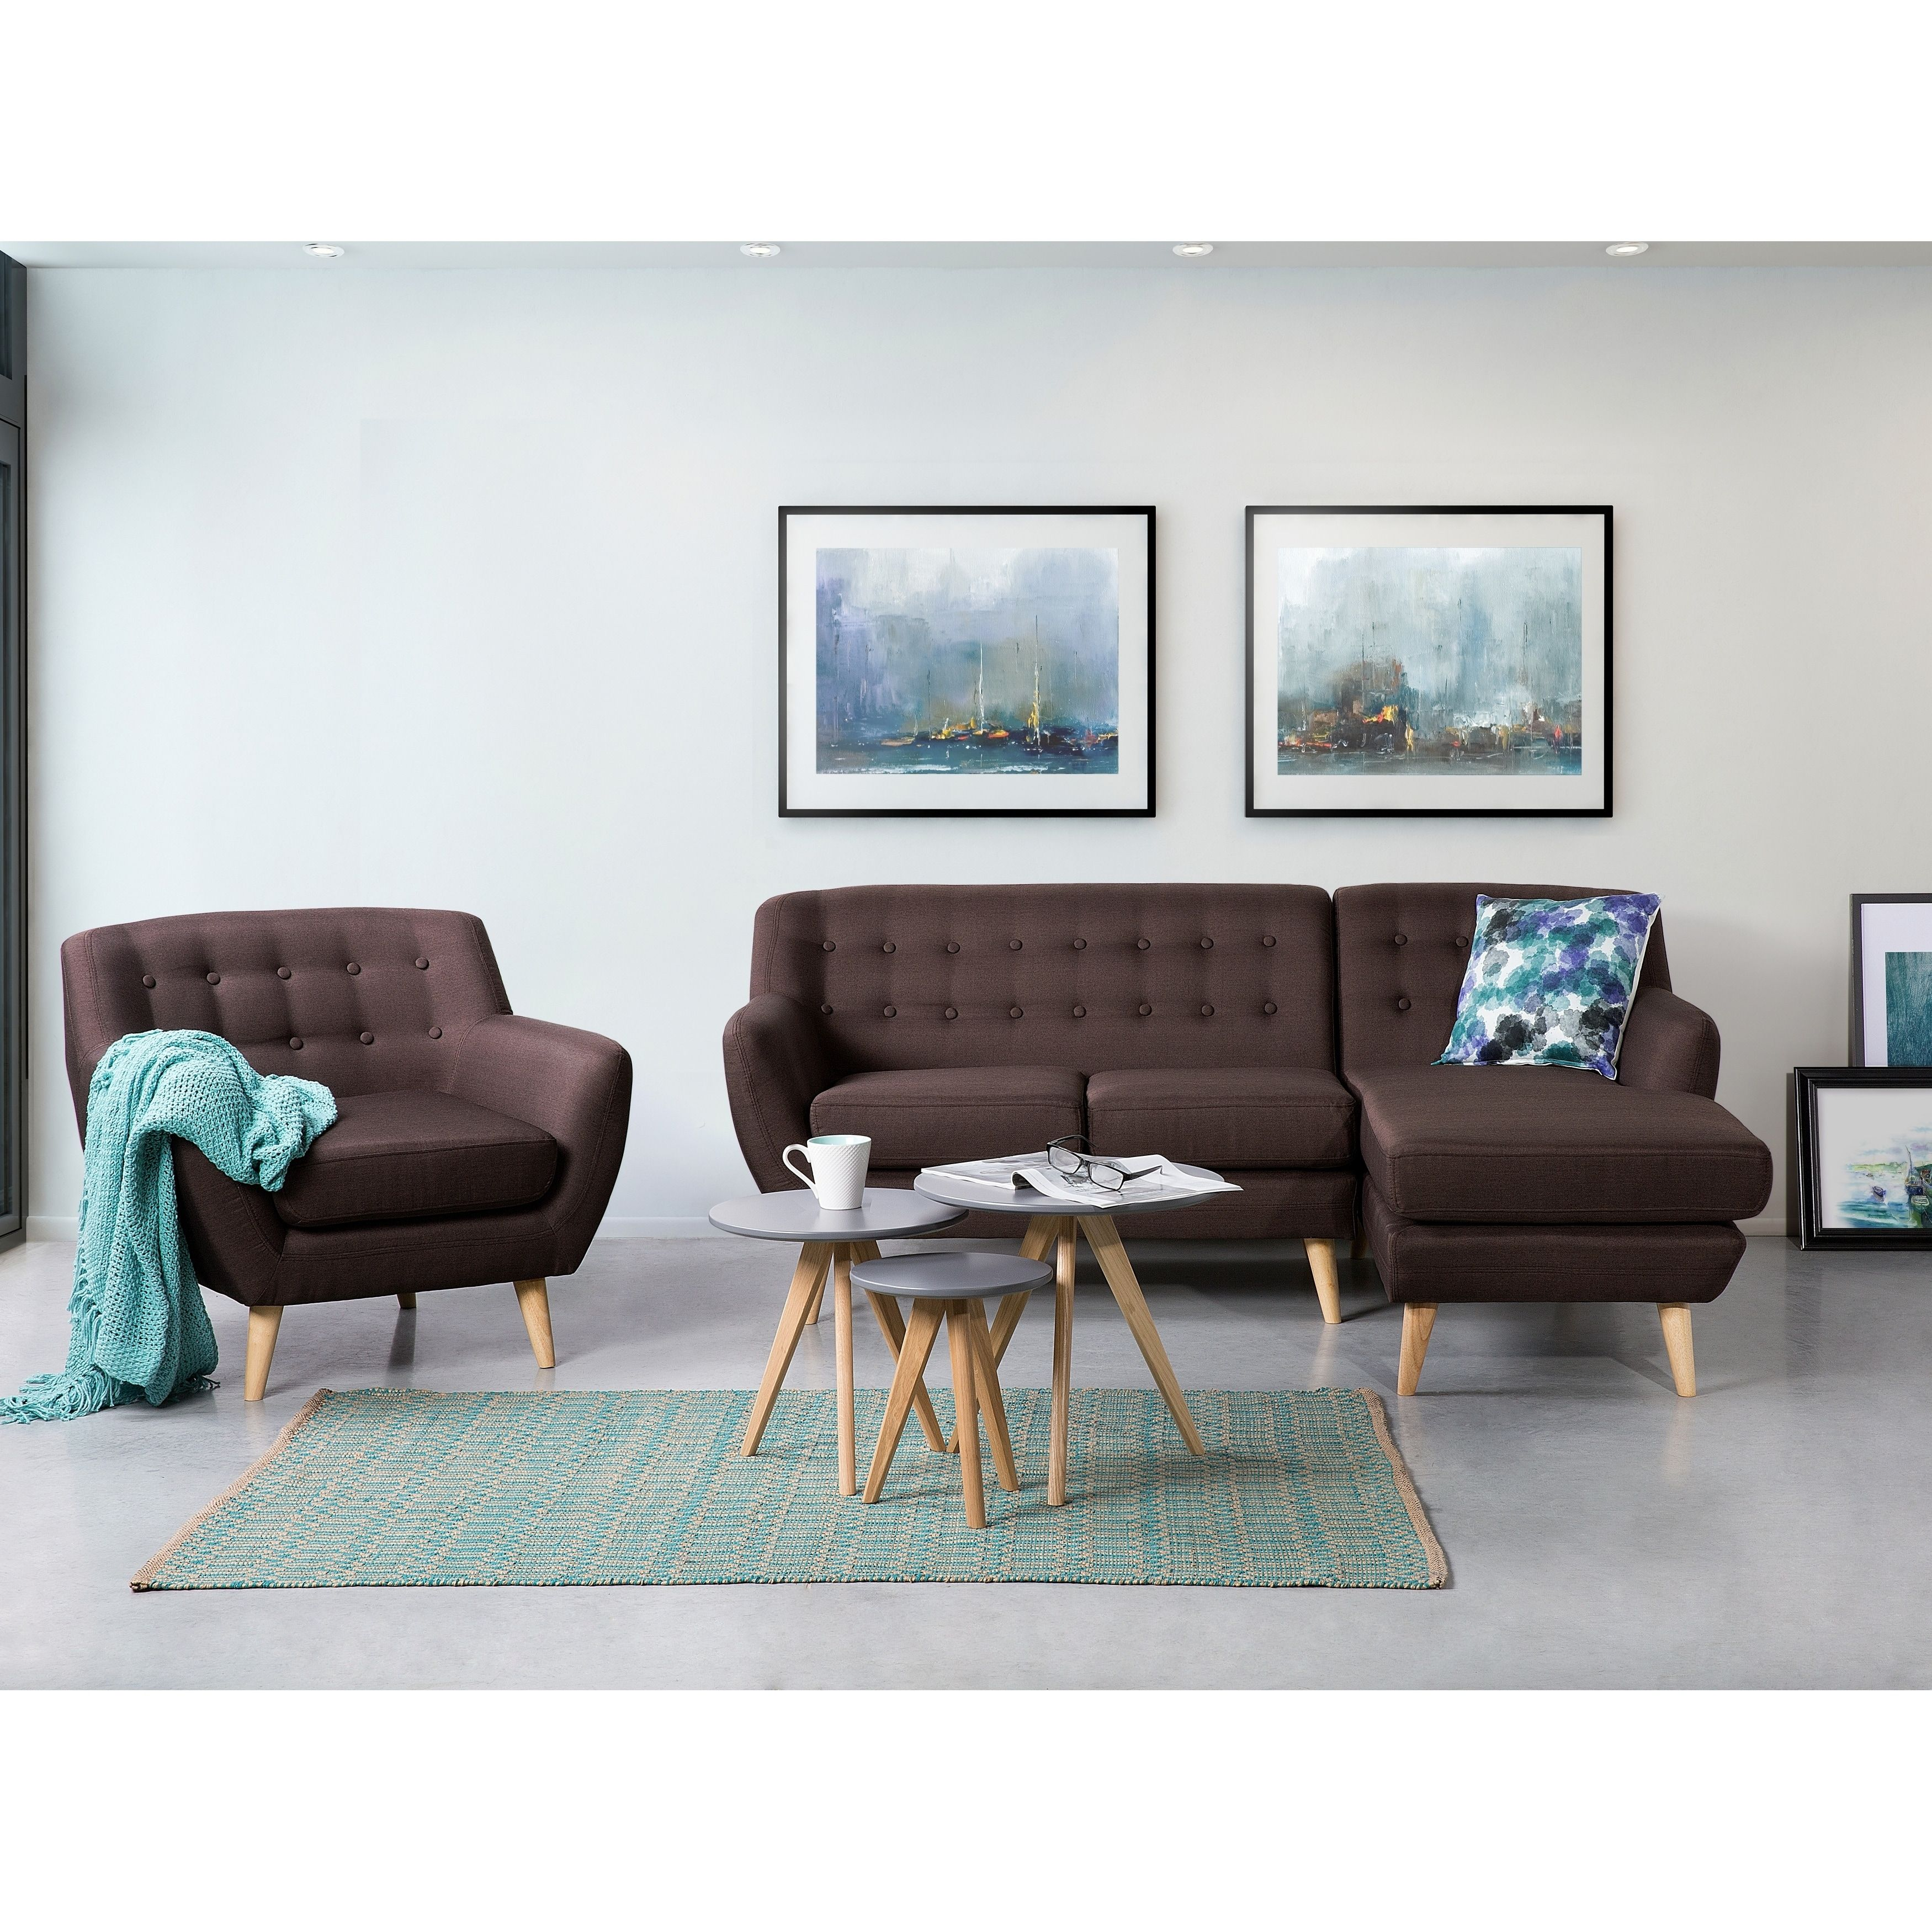 Beliani Tufted Sectional Sofa Brown Motala Polyester